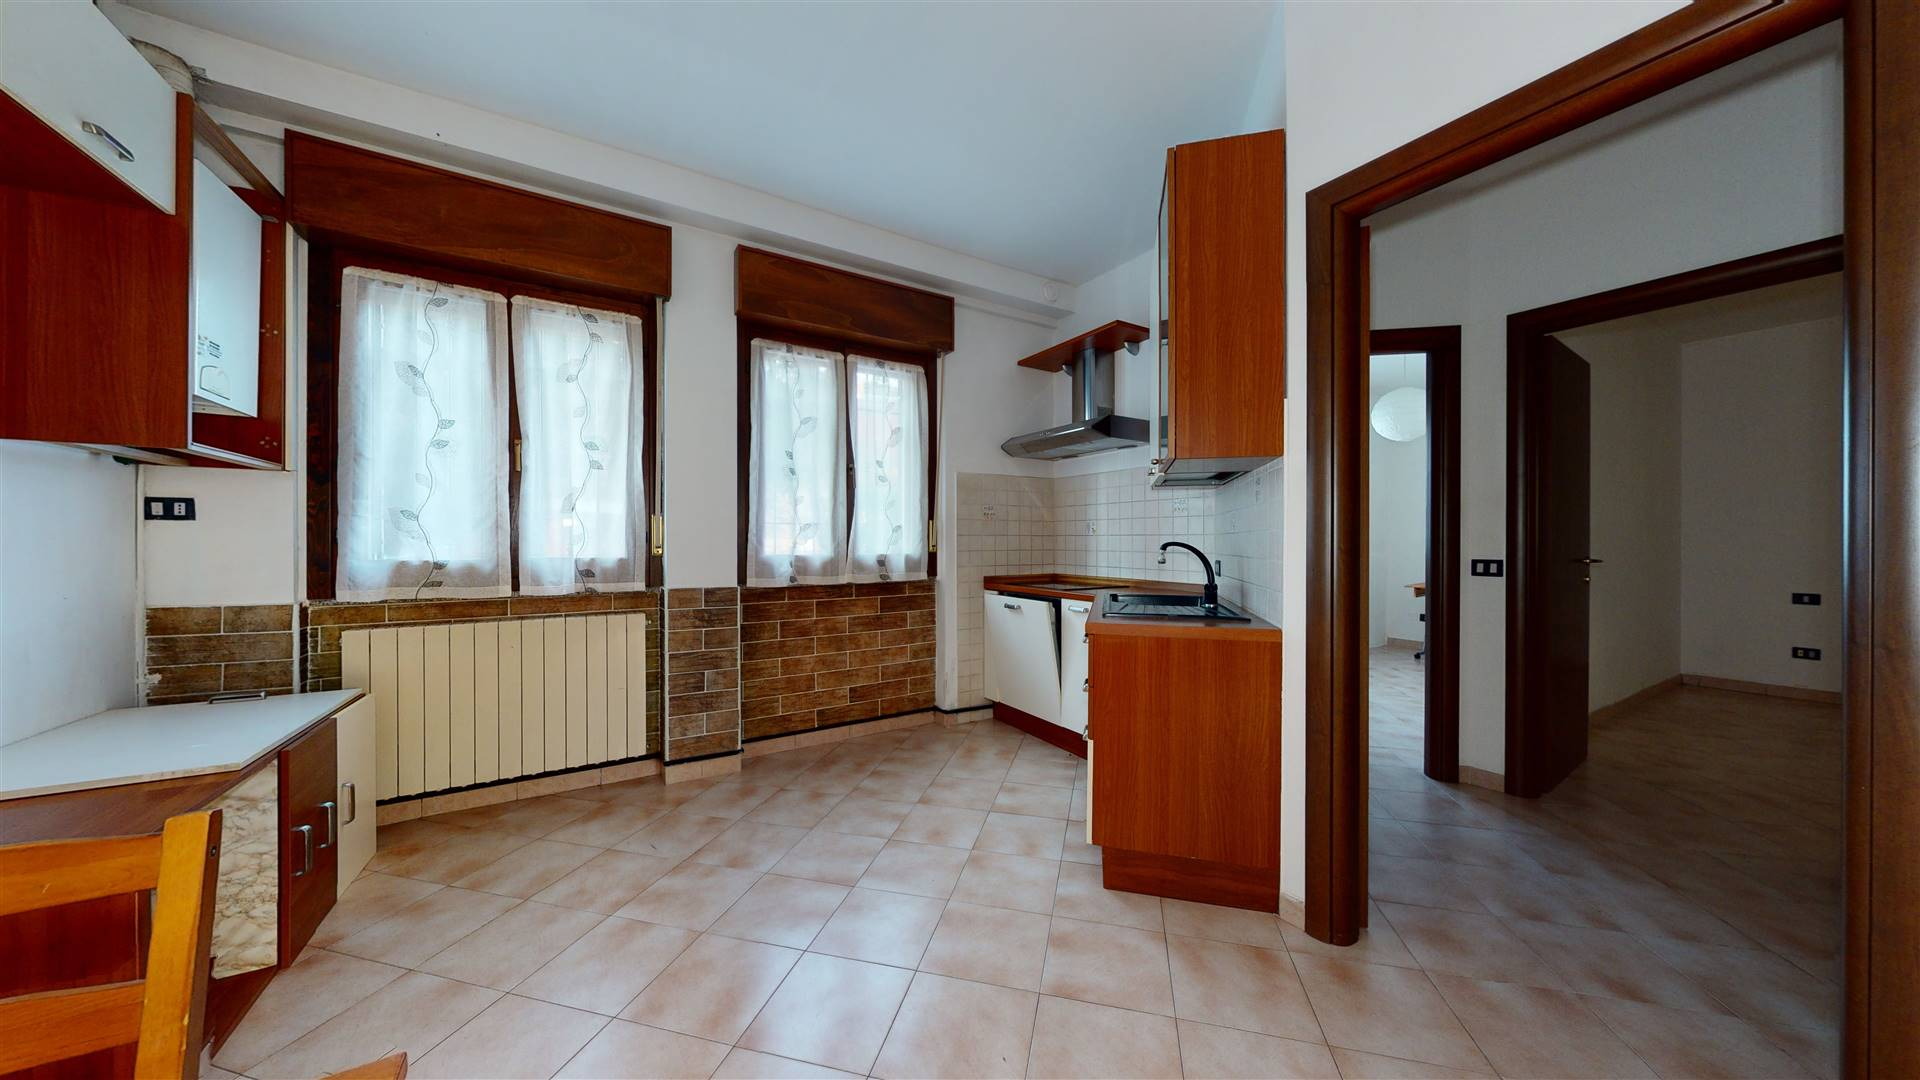 CASSANO D'ADDA, Apartment for sale of 75 Sq. mt., Excellent Condition, Heating Individual heating system, Energetic class: G, Epi: 192,07 kwh/m2 year,